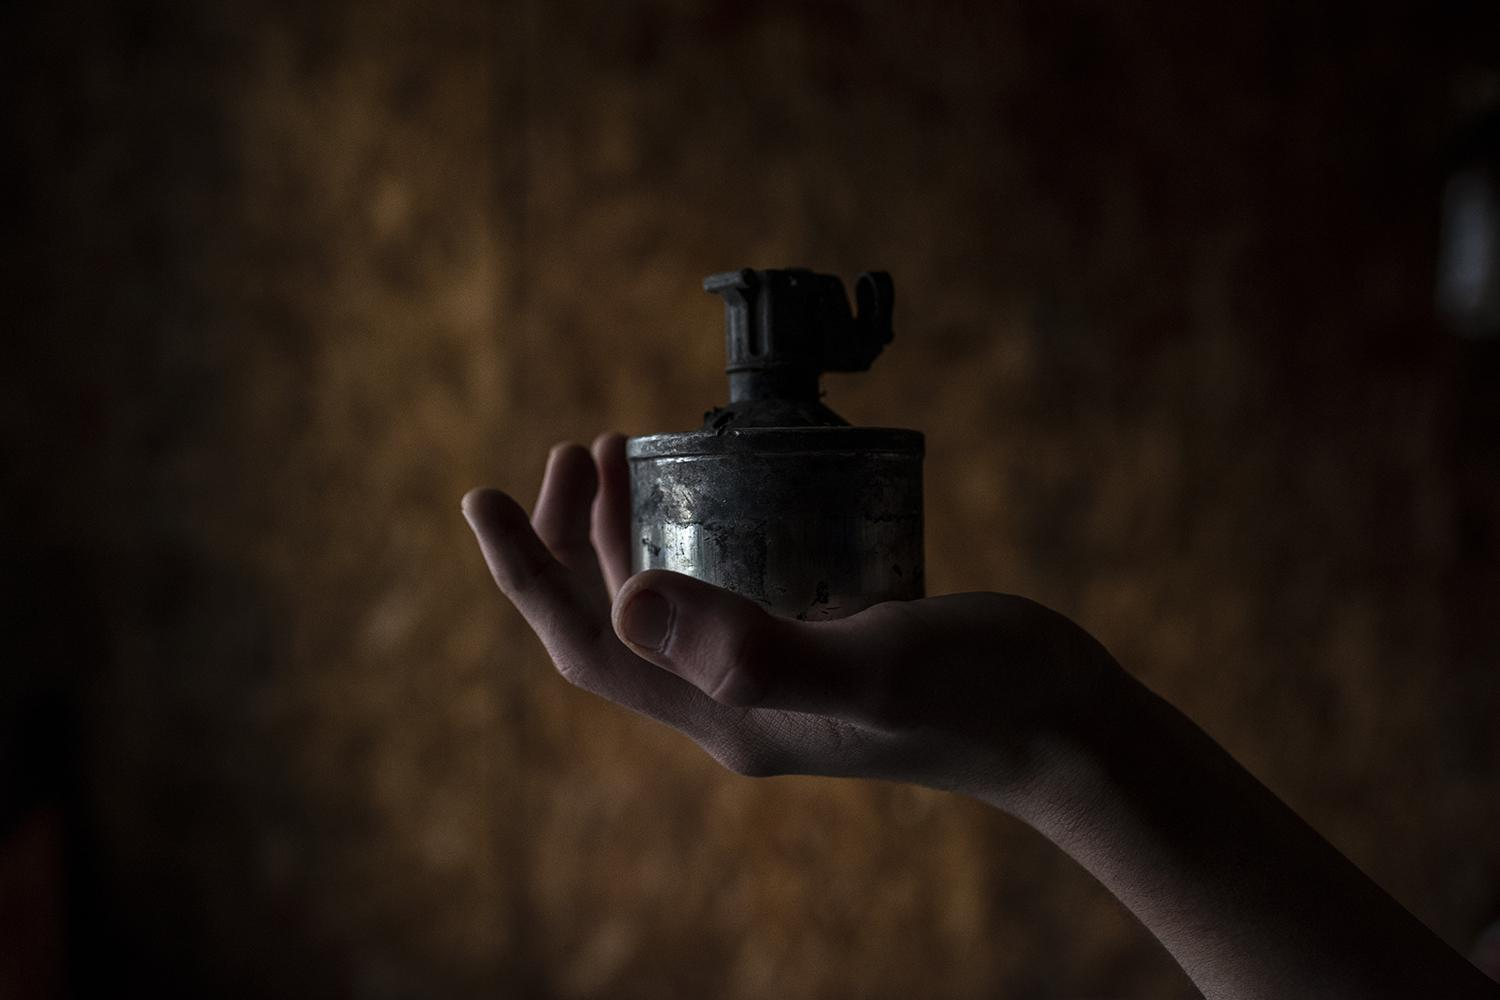 Israel Hernandez Huentecol holding a tear gas can used by riot police and found near his home. Israel's brother , Brandon, was shot by the police and he has been threatened by members of the police special forces. Curaco, Araucanía Region. Chile. 22nd, July,2019.